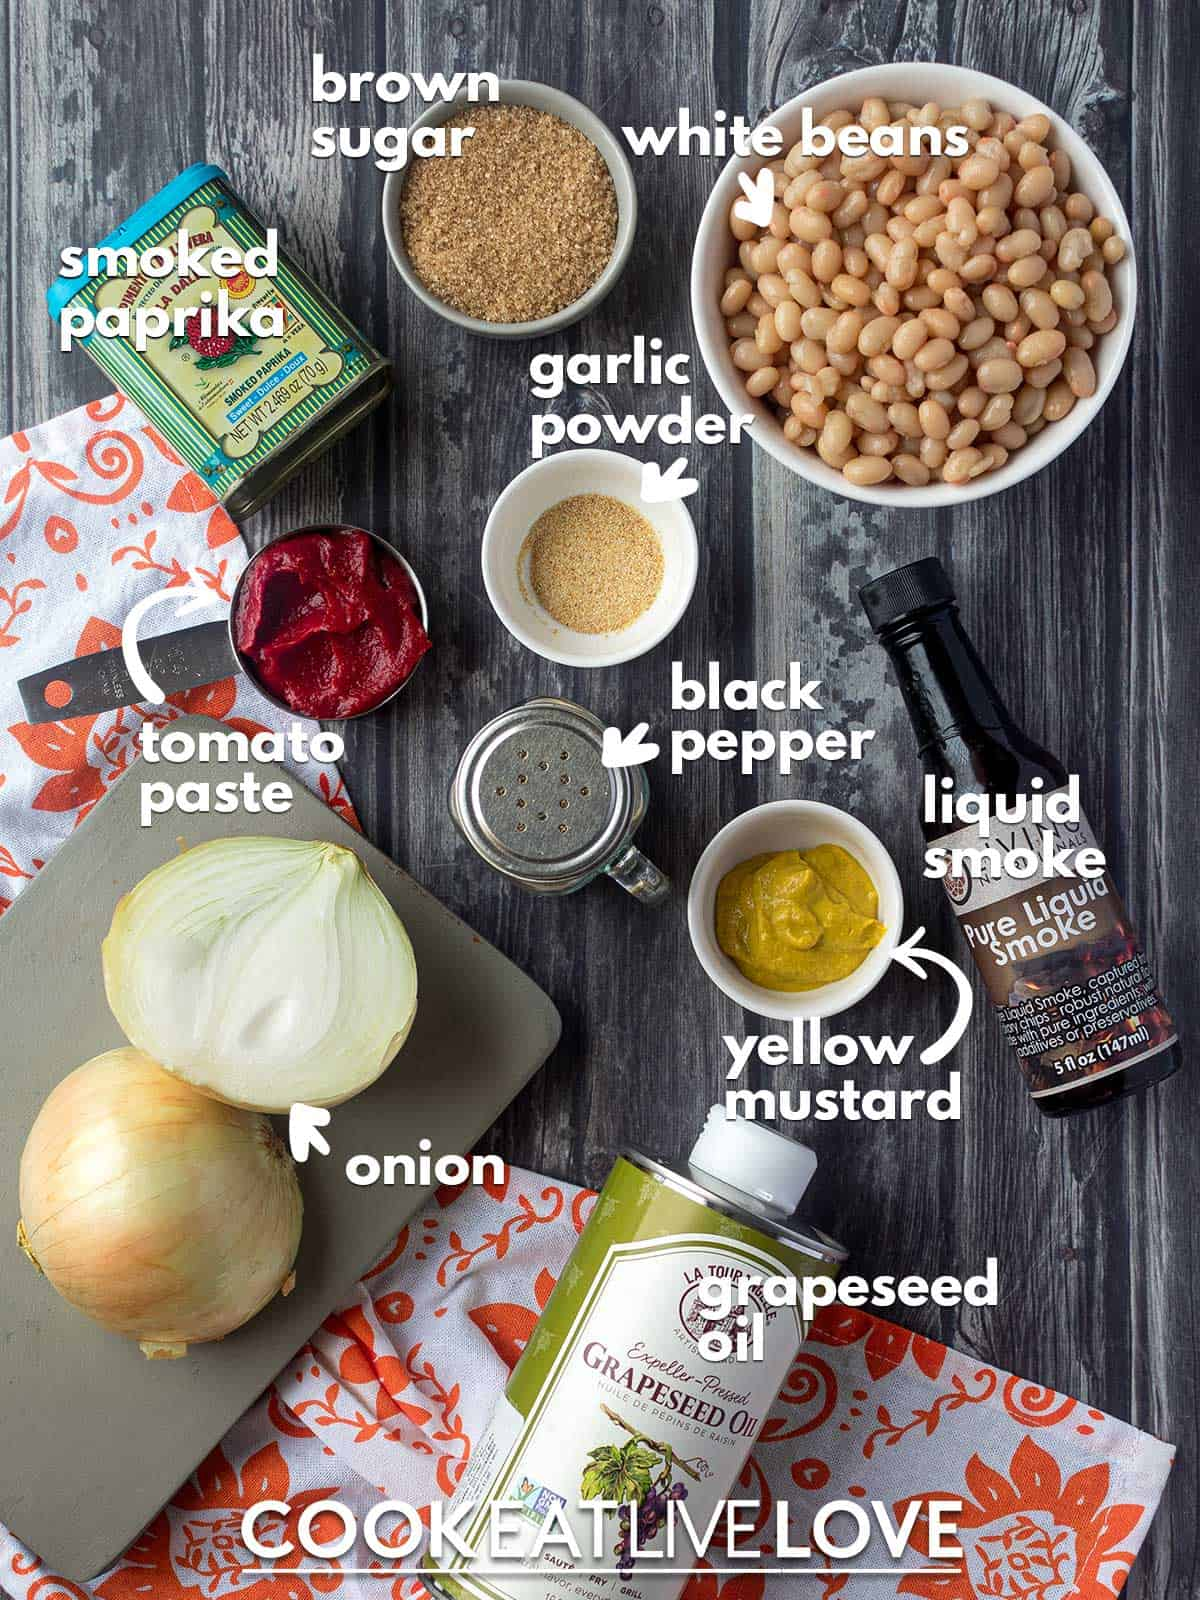 Ingredients to make vegan baked beans on the table with text labels.